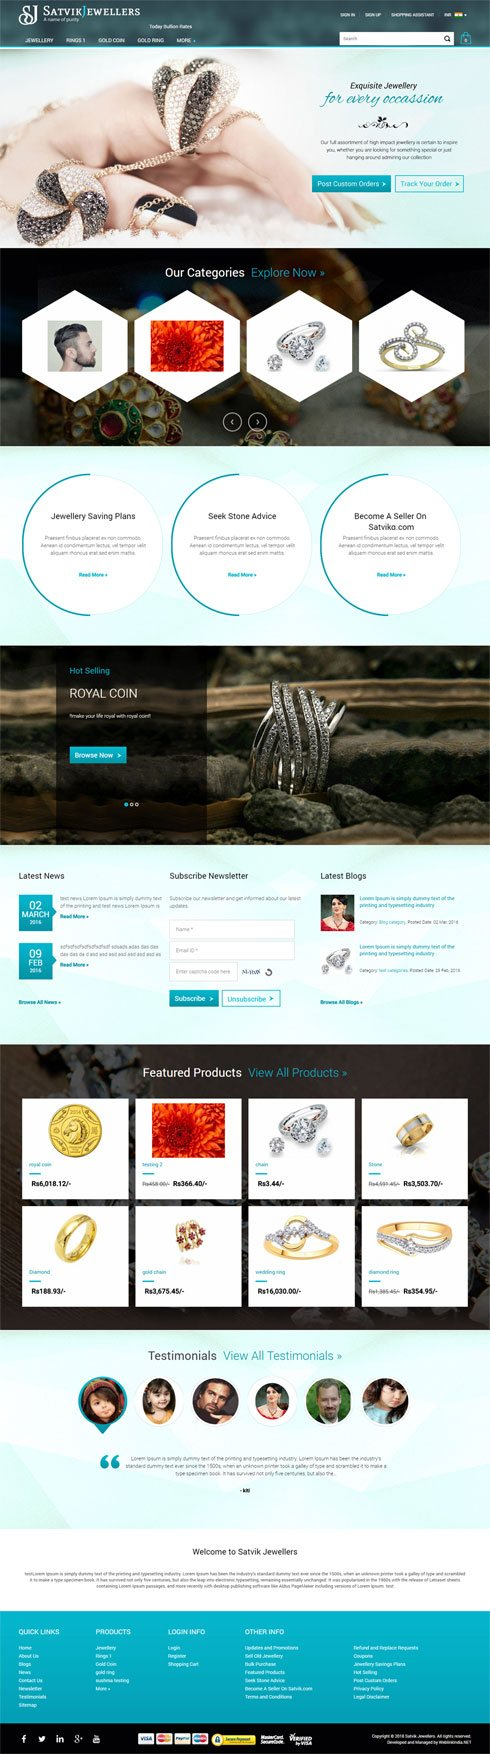 Satvik Jeweller  India Web Design